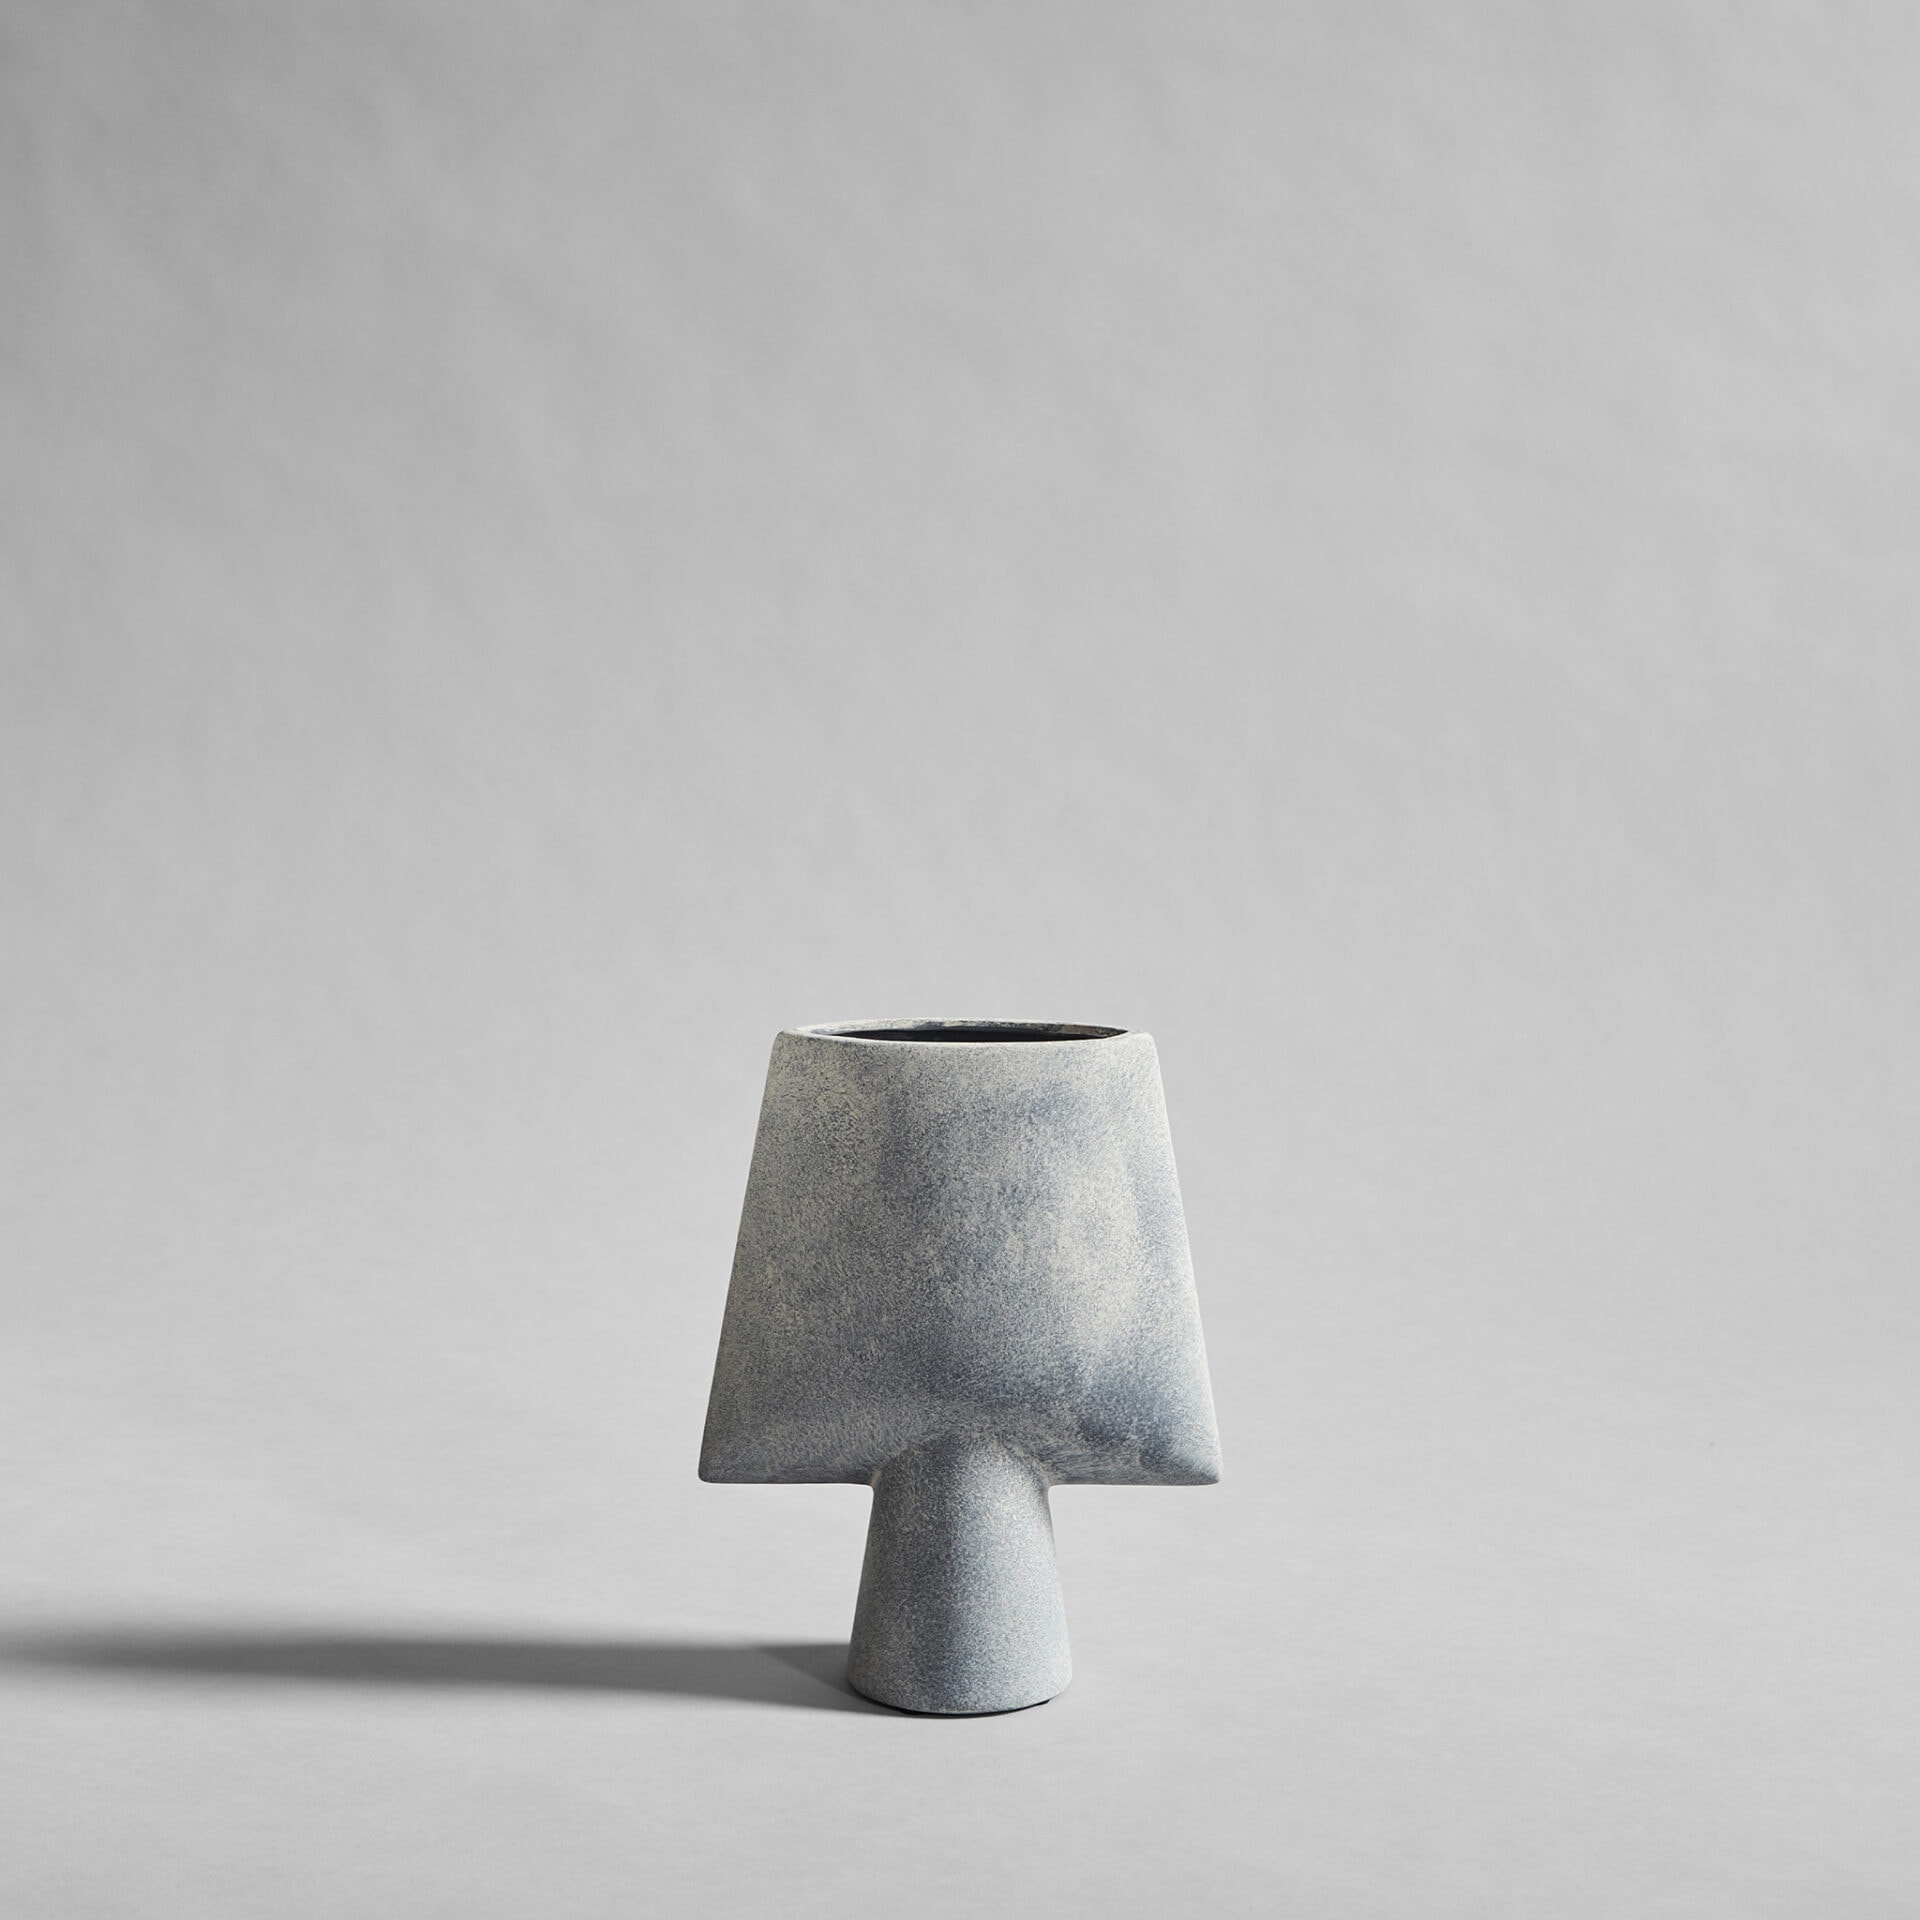 011215 SPHERE VASE SQUARE MINI LIGHT GREY | Design Studio Anneke Crauwels | Interieur | Mechelen